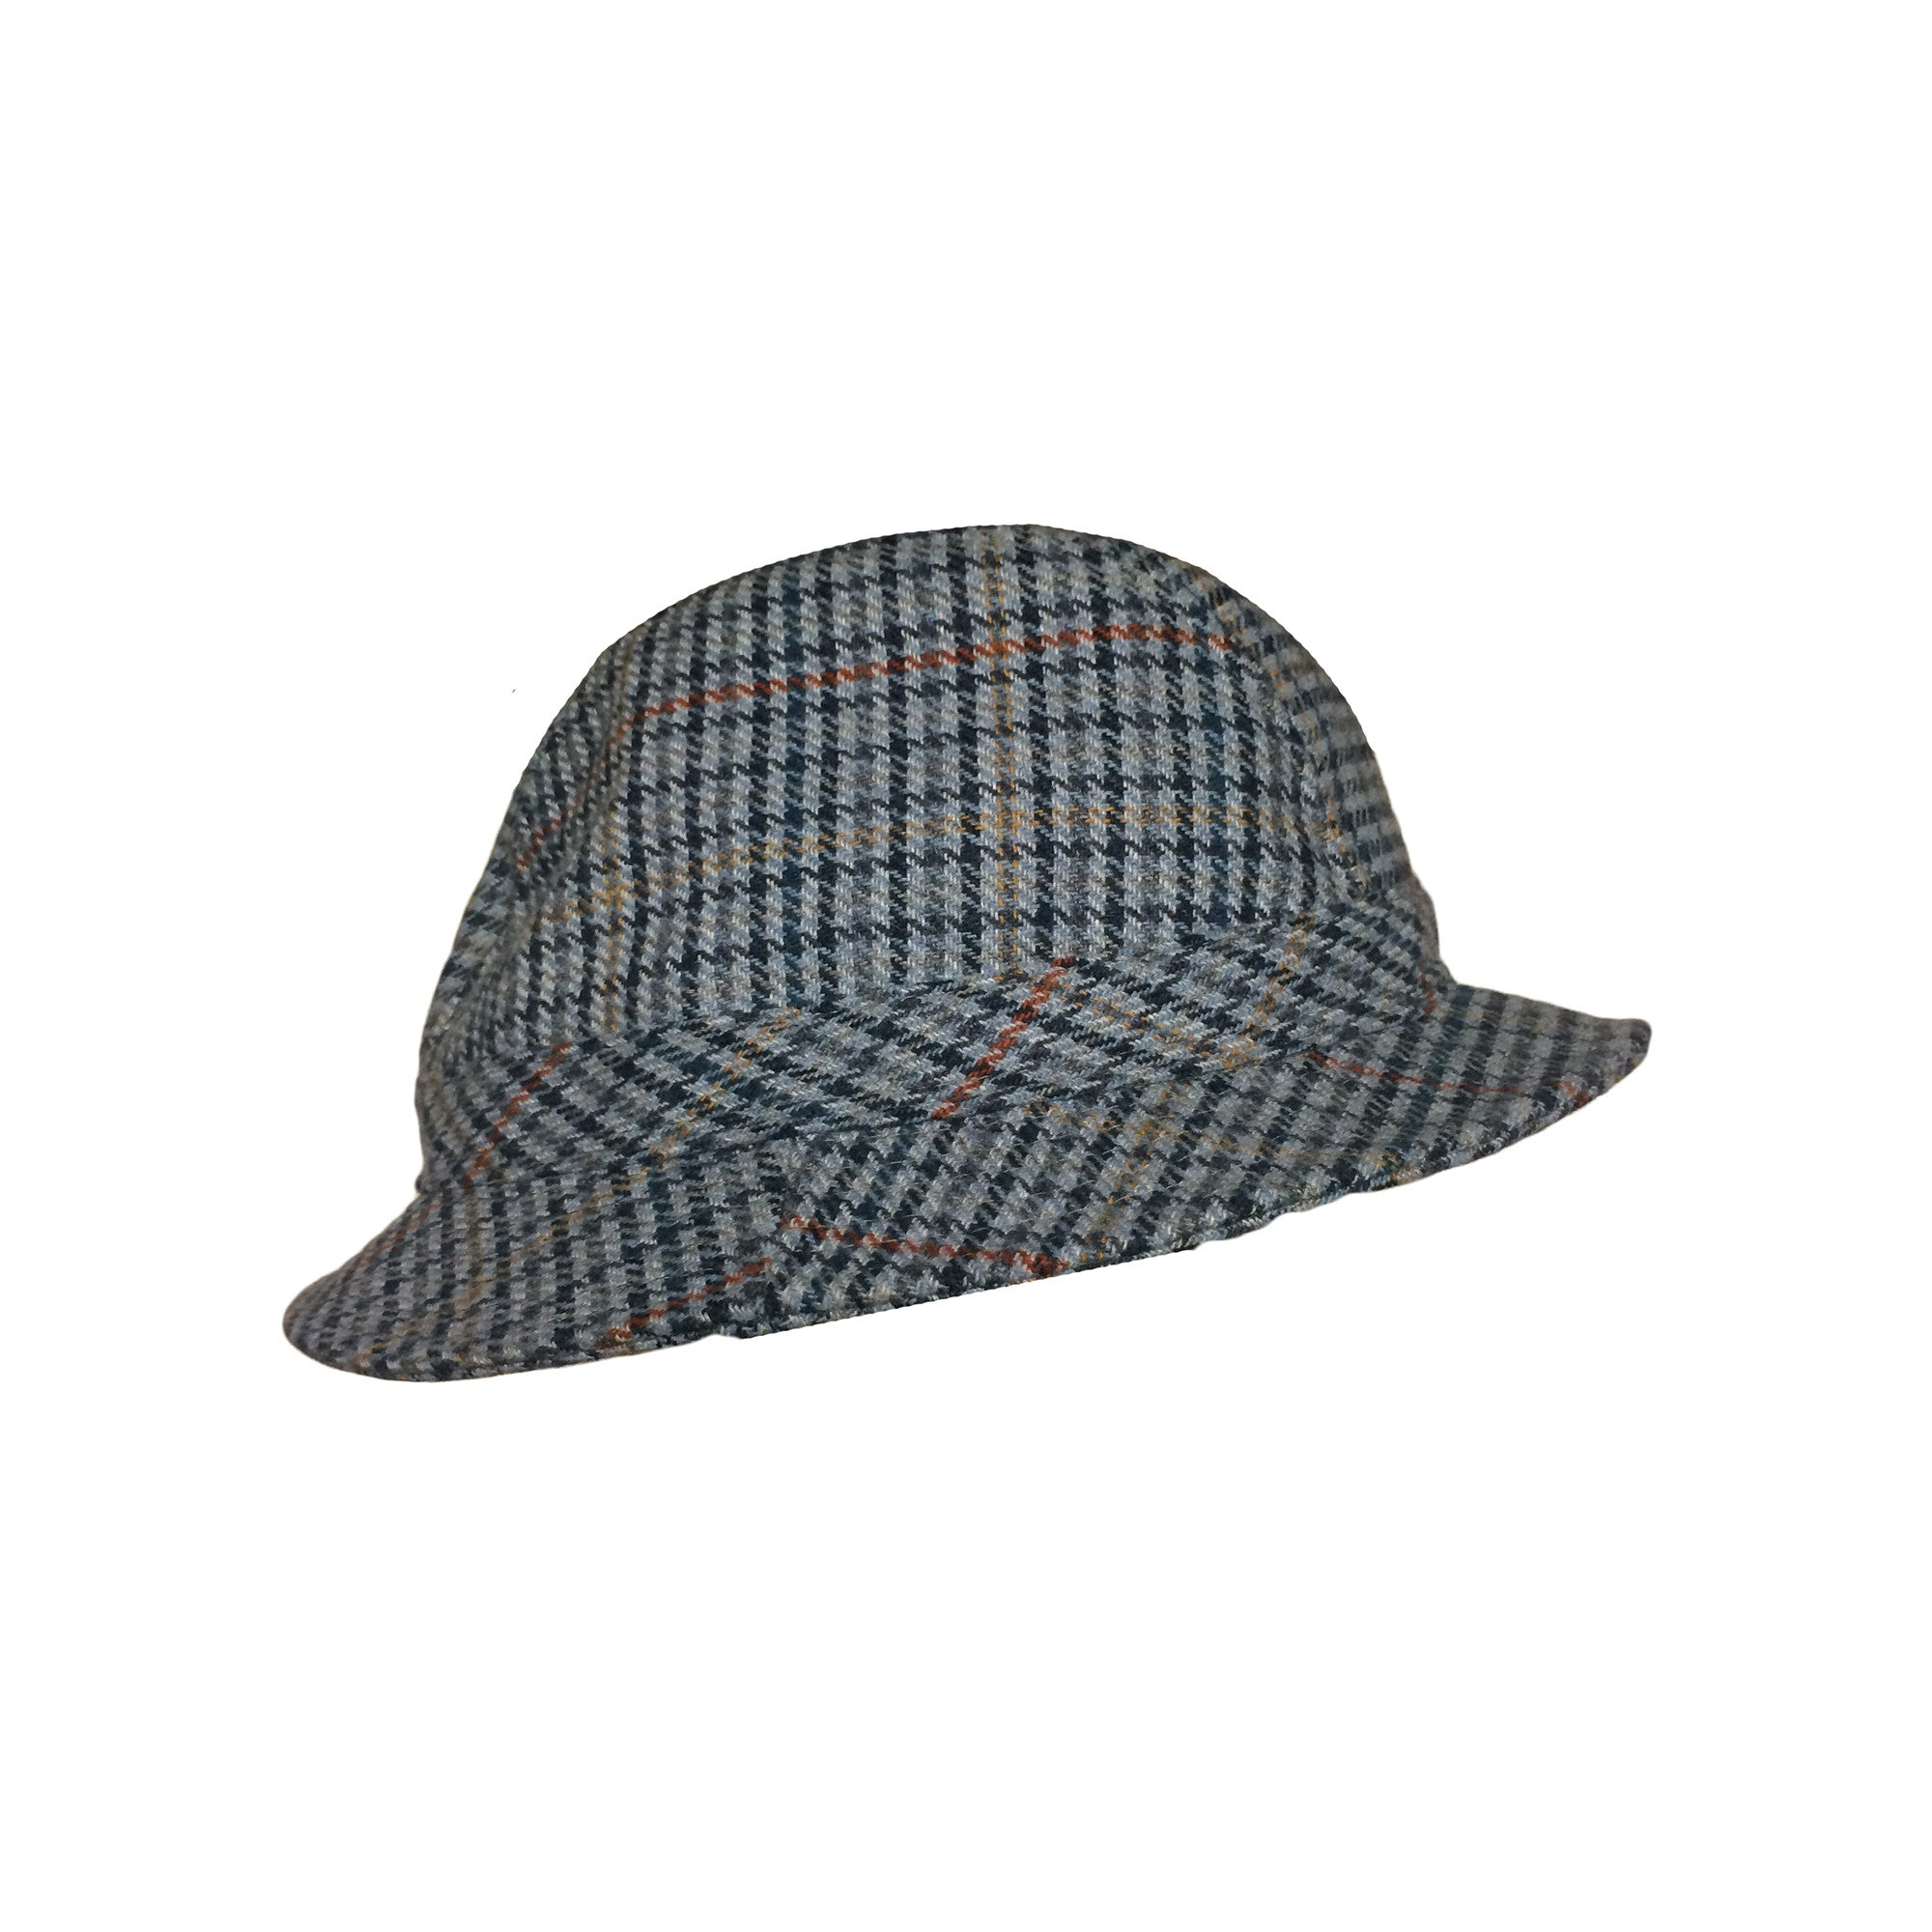 Hoggs of Fife Hats Tweed Trilby Hat  product tags  - Stuarts Outdoor 7416a2d0427